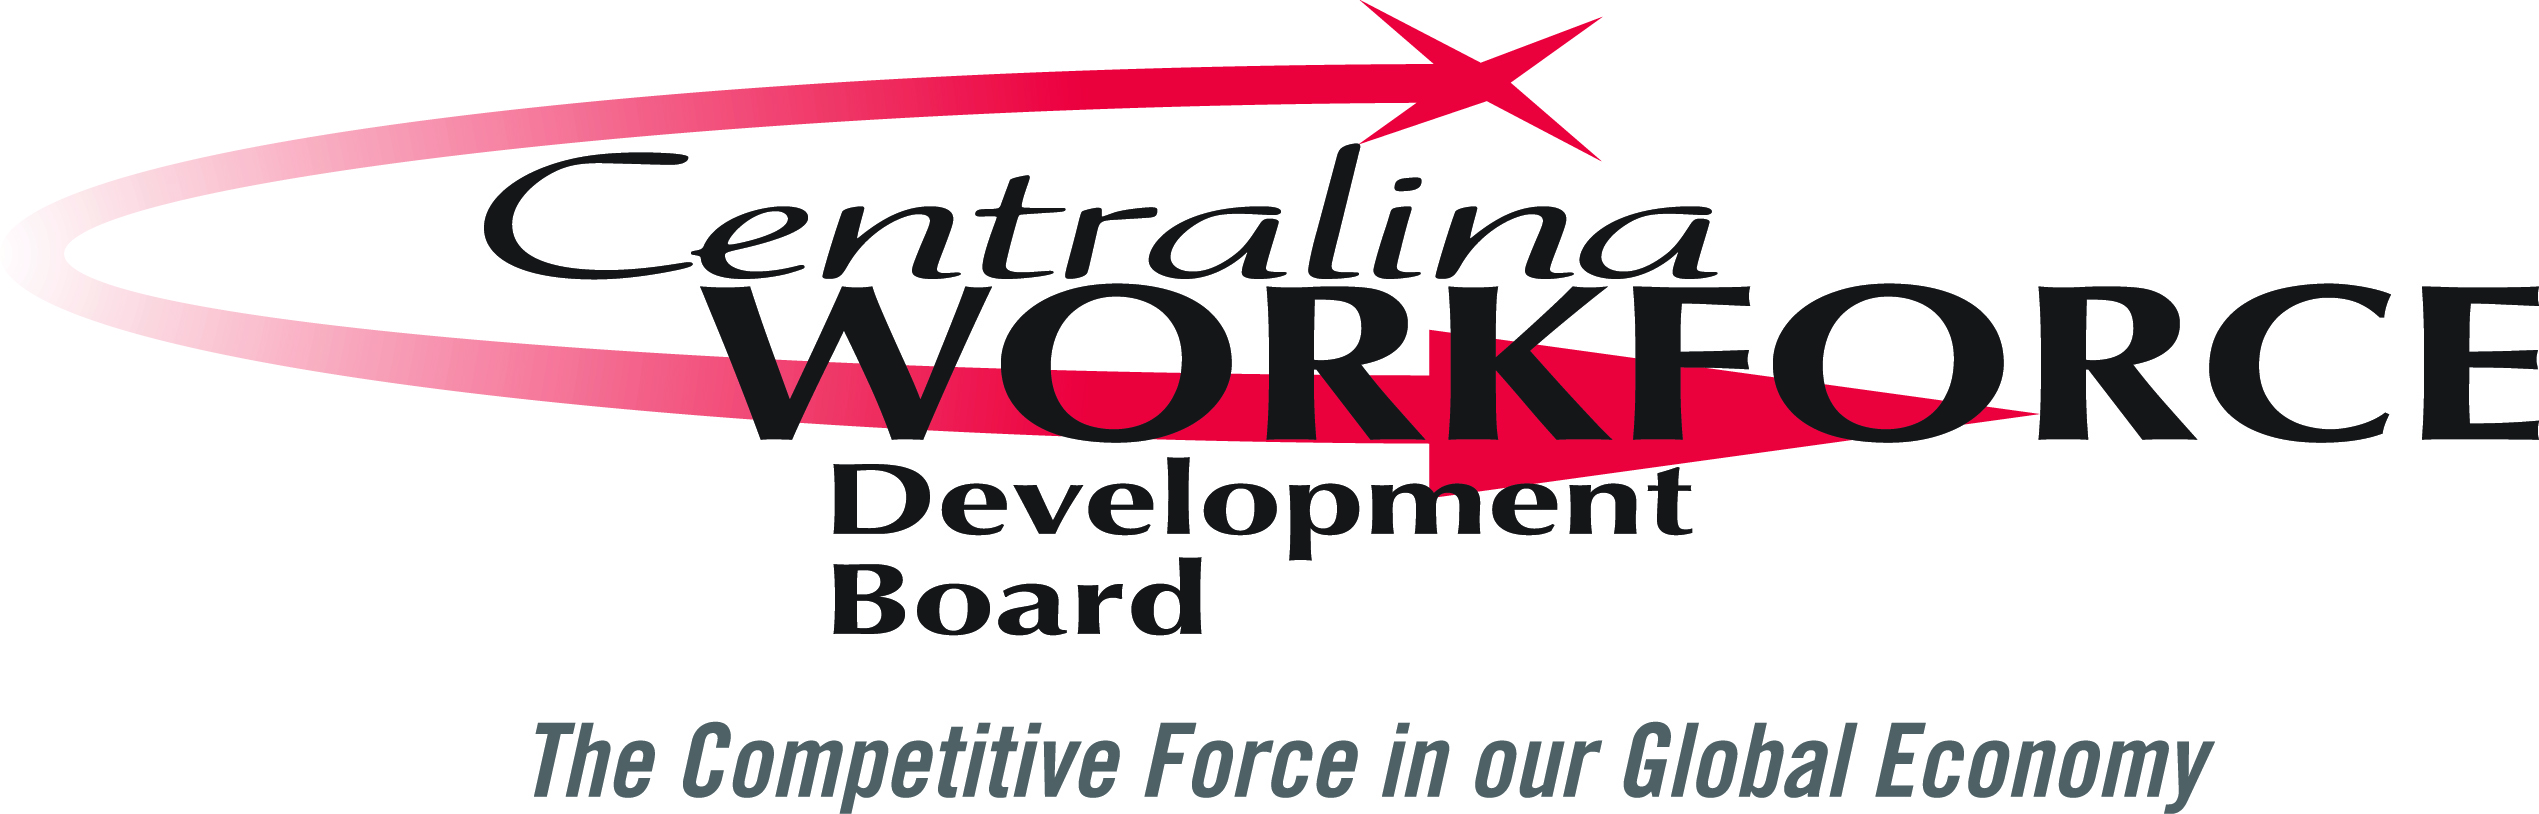 Centralina Workforce Development